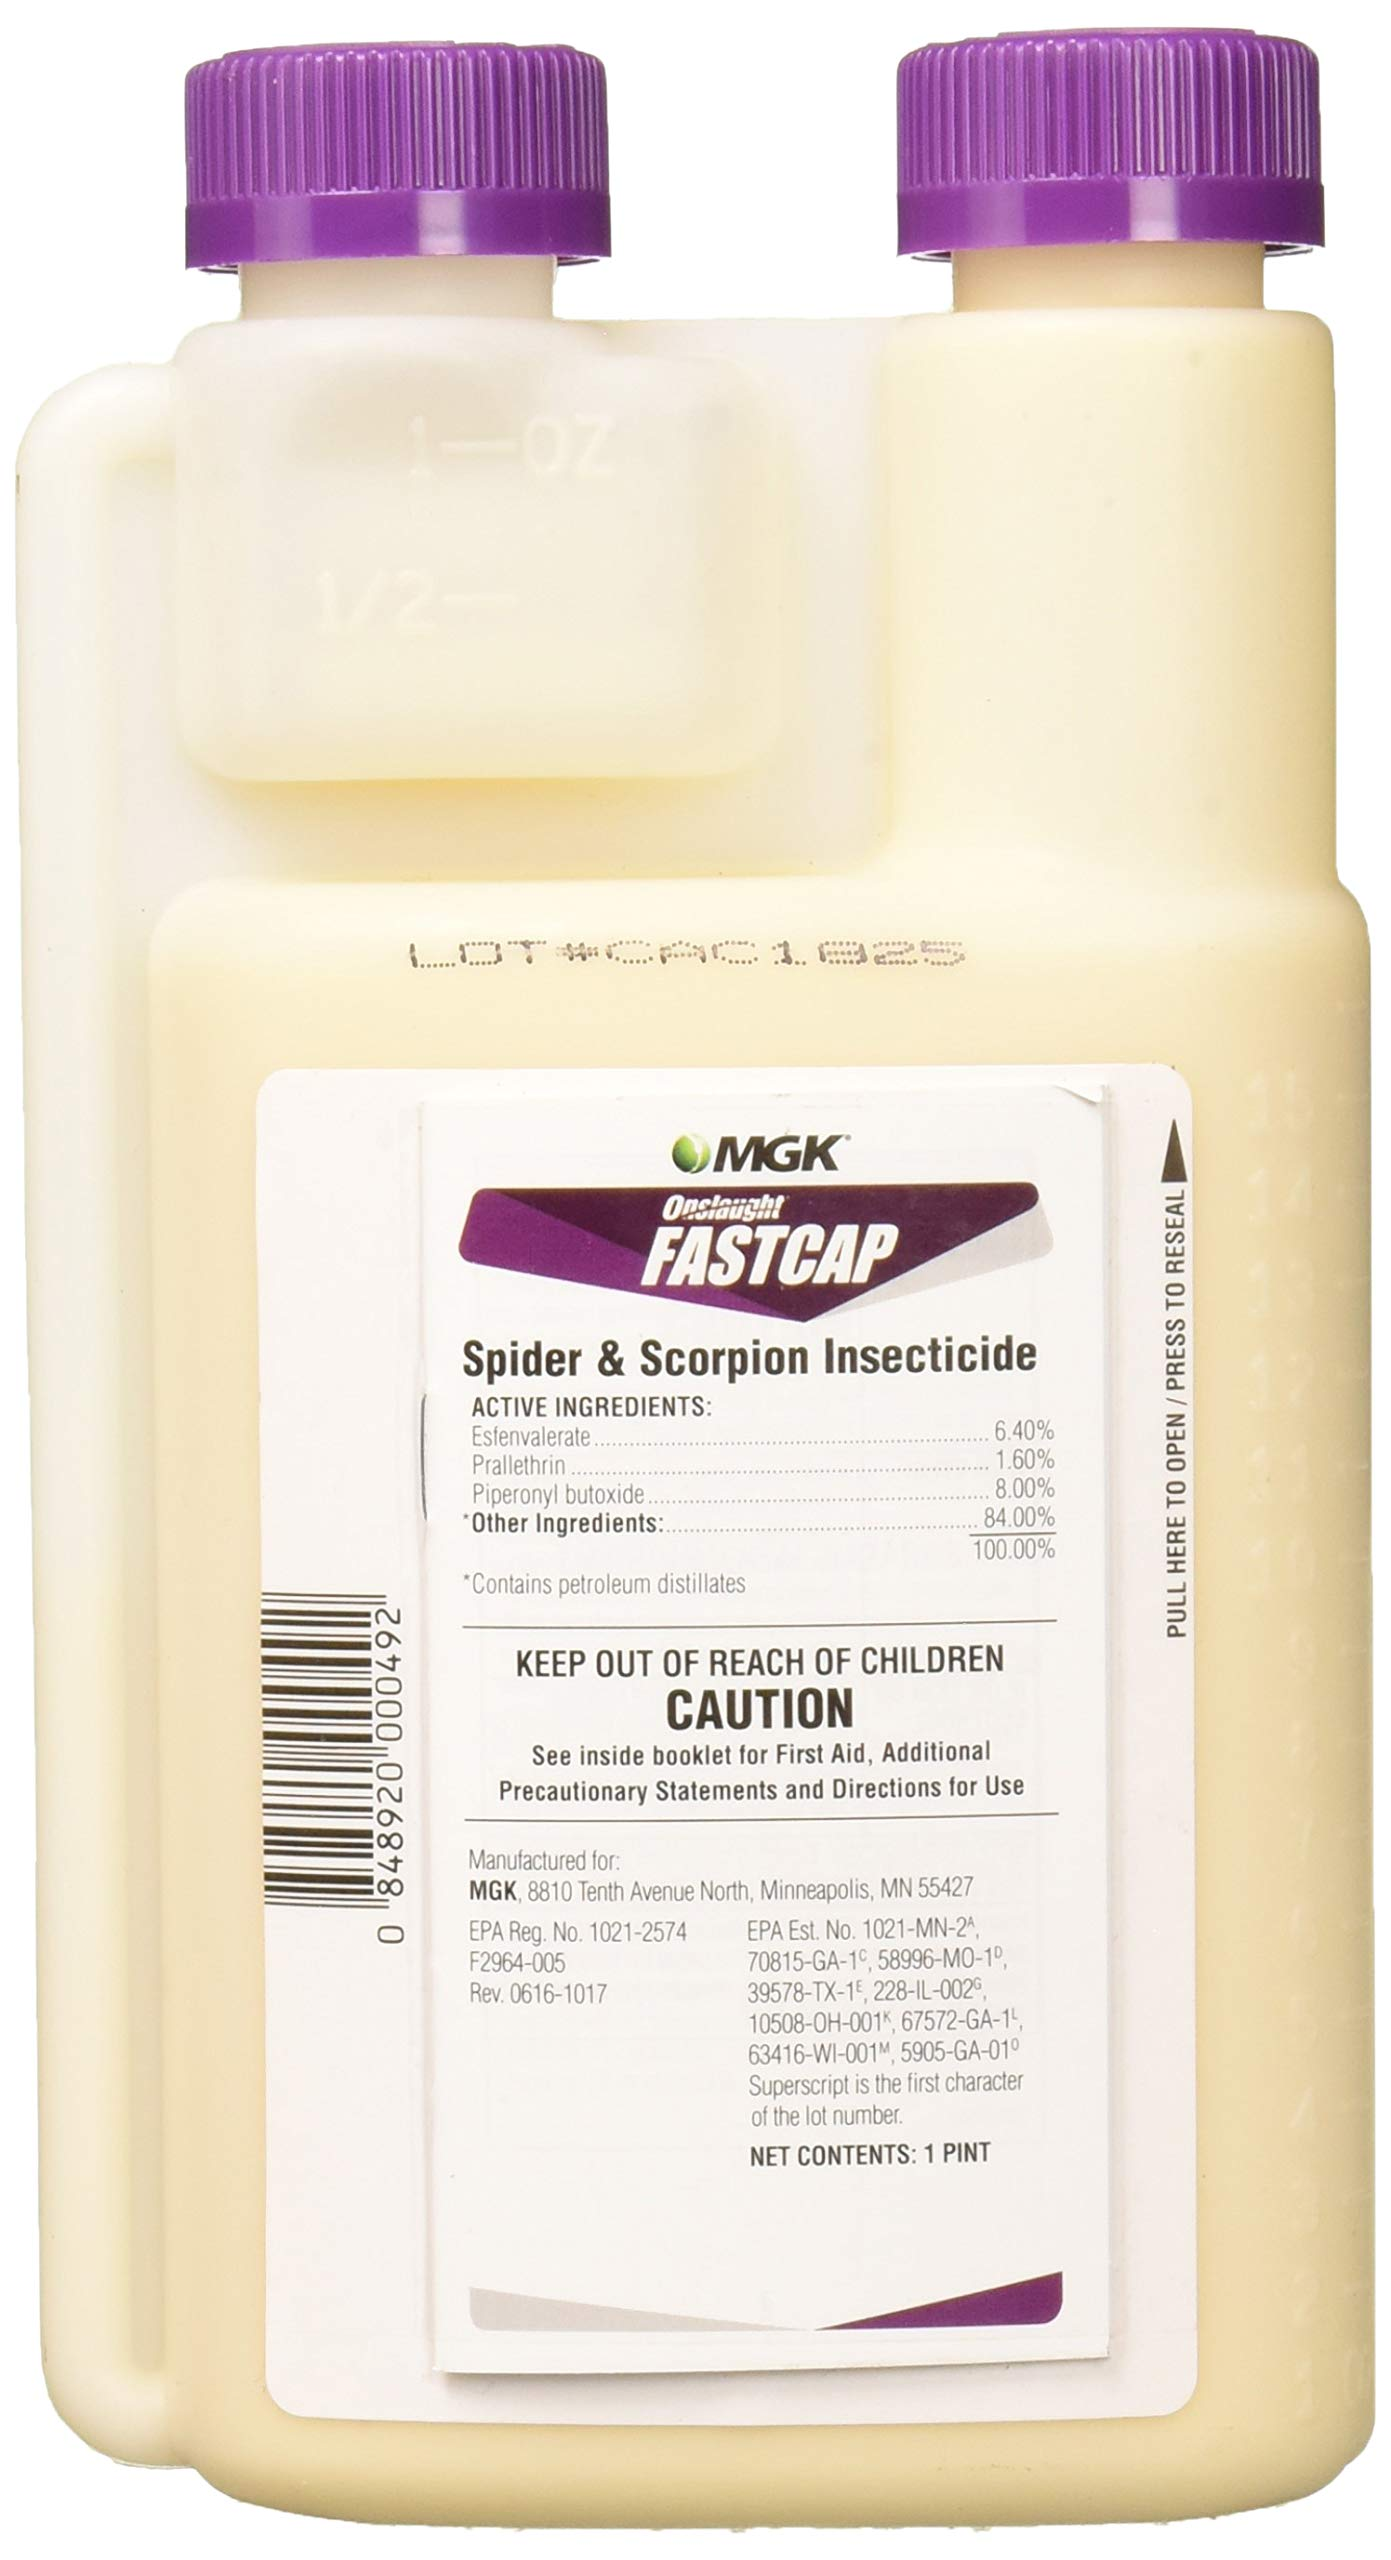 MGK 10085 Onslaught FastCap Spider and Scorpion Insecticide by MGK